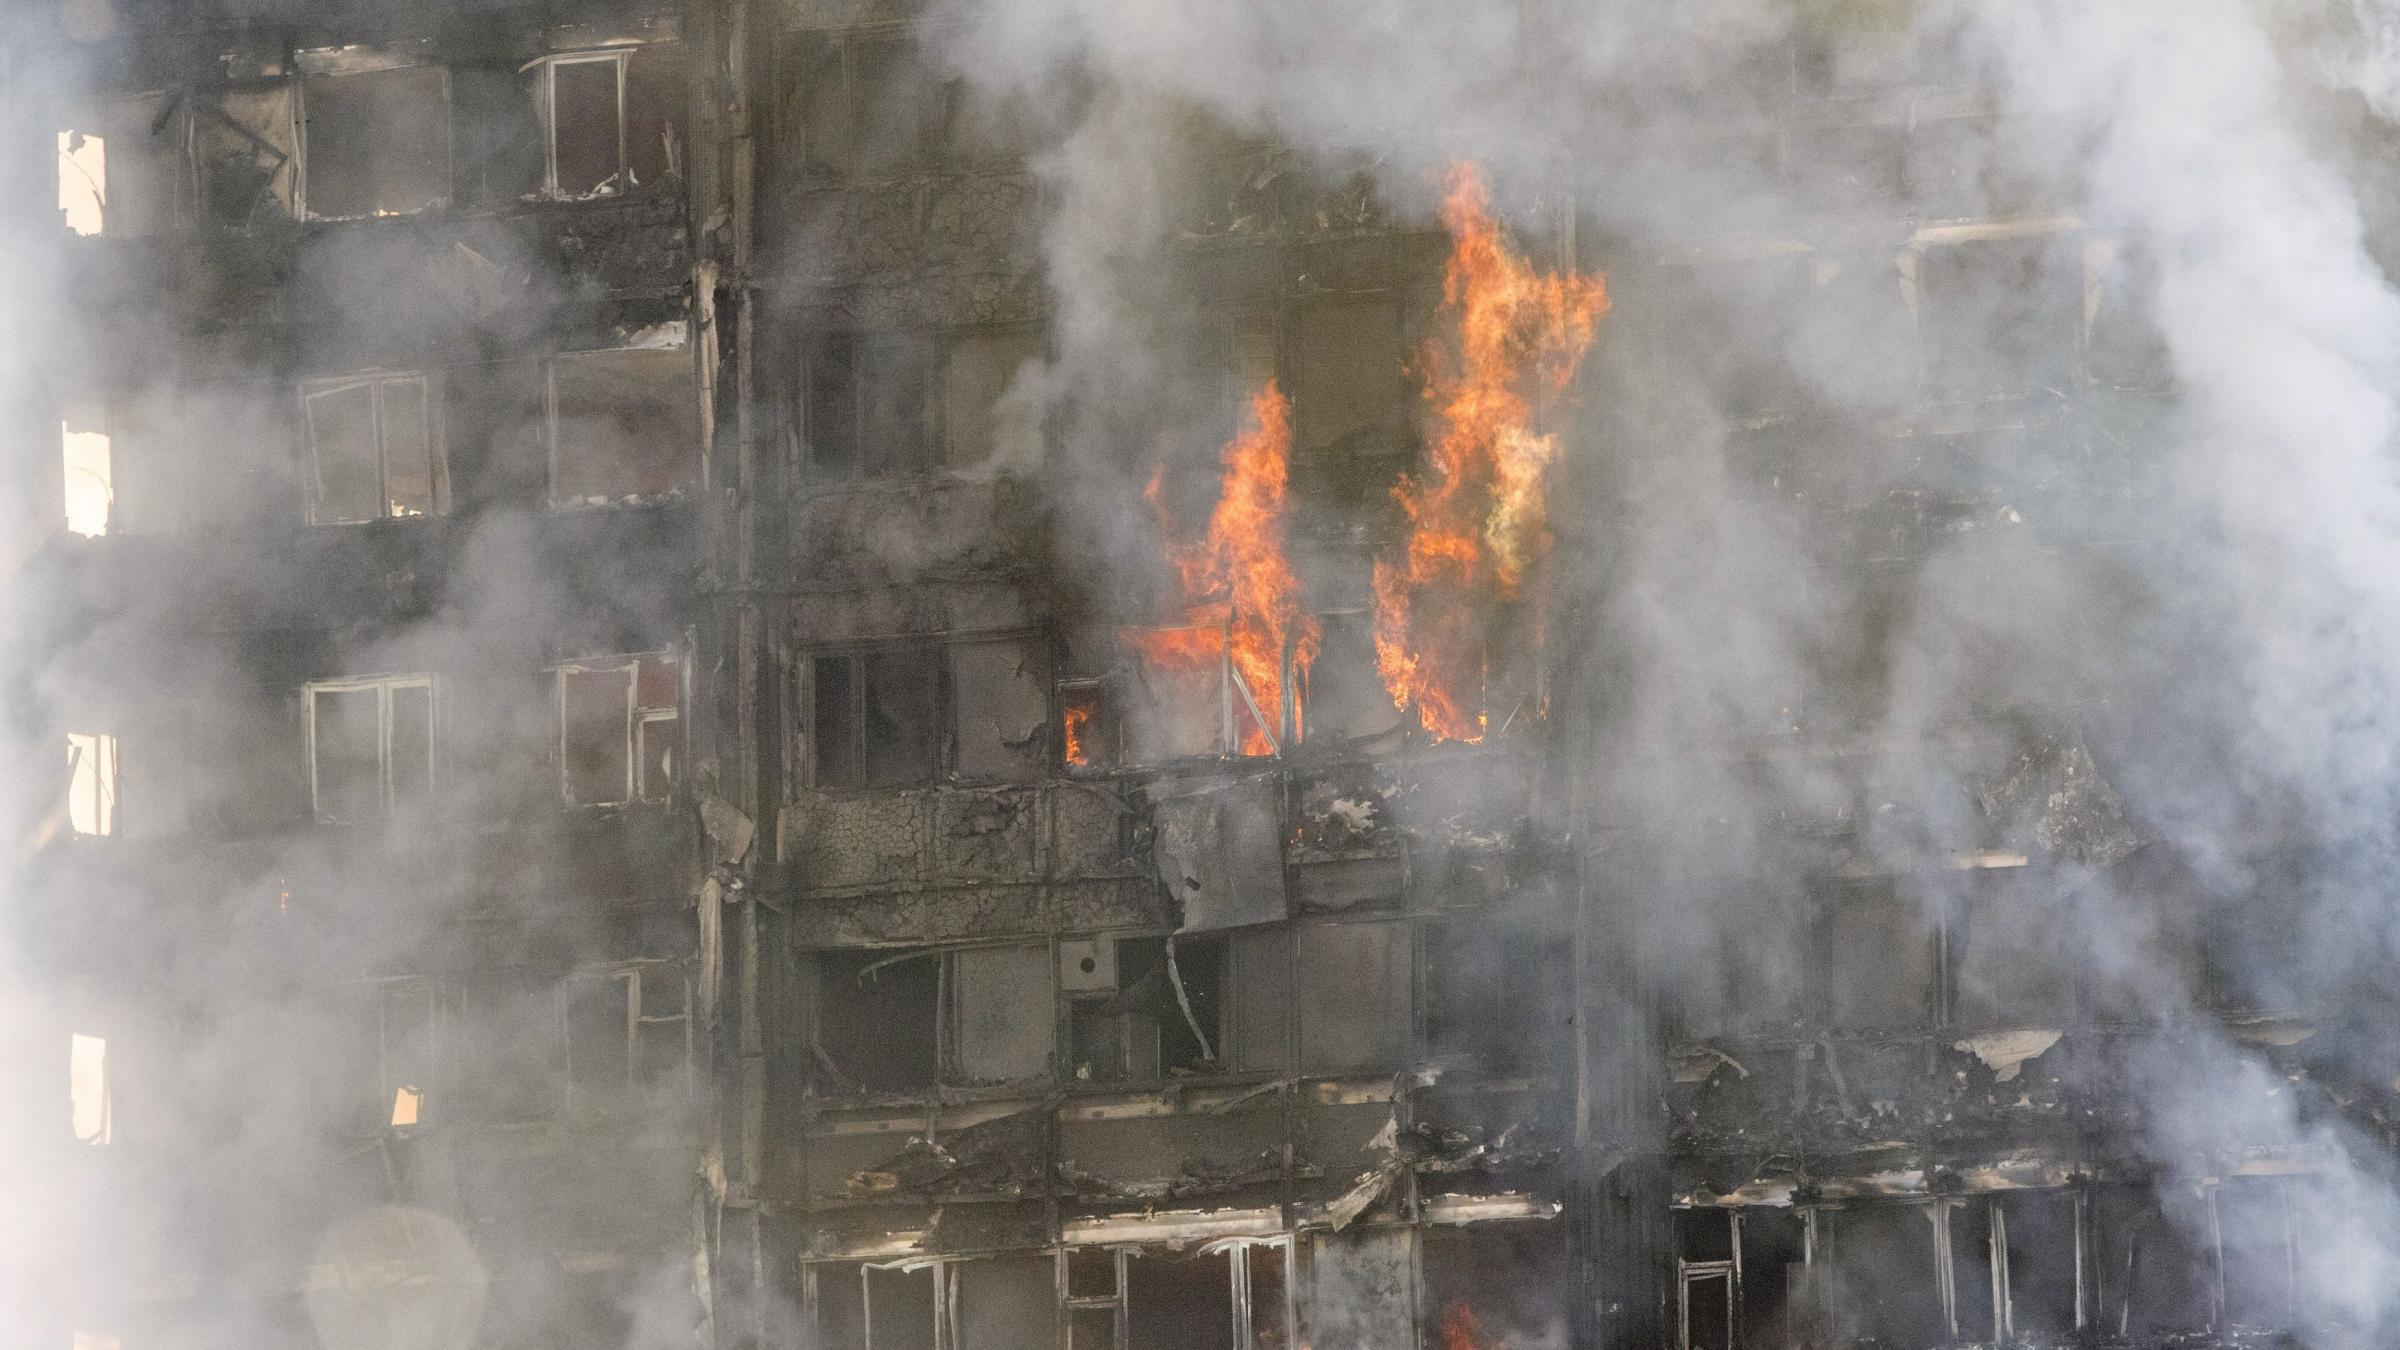 Multiple fatalities as fire engulfs tower block trapping residents in flames